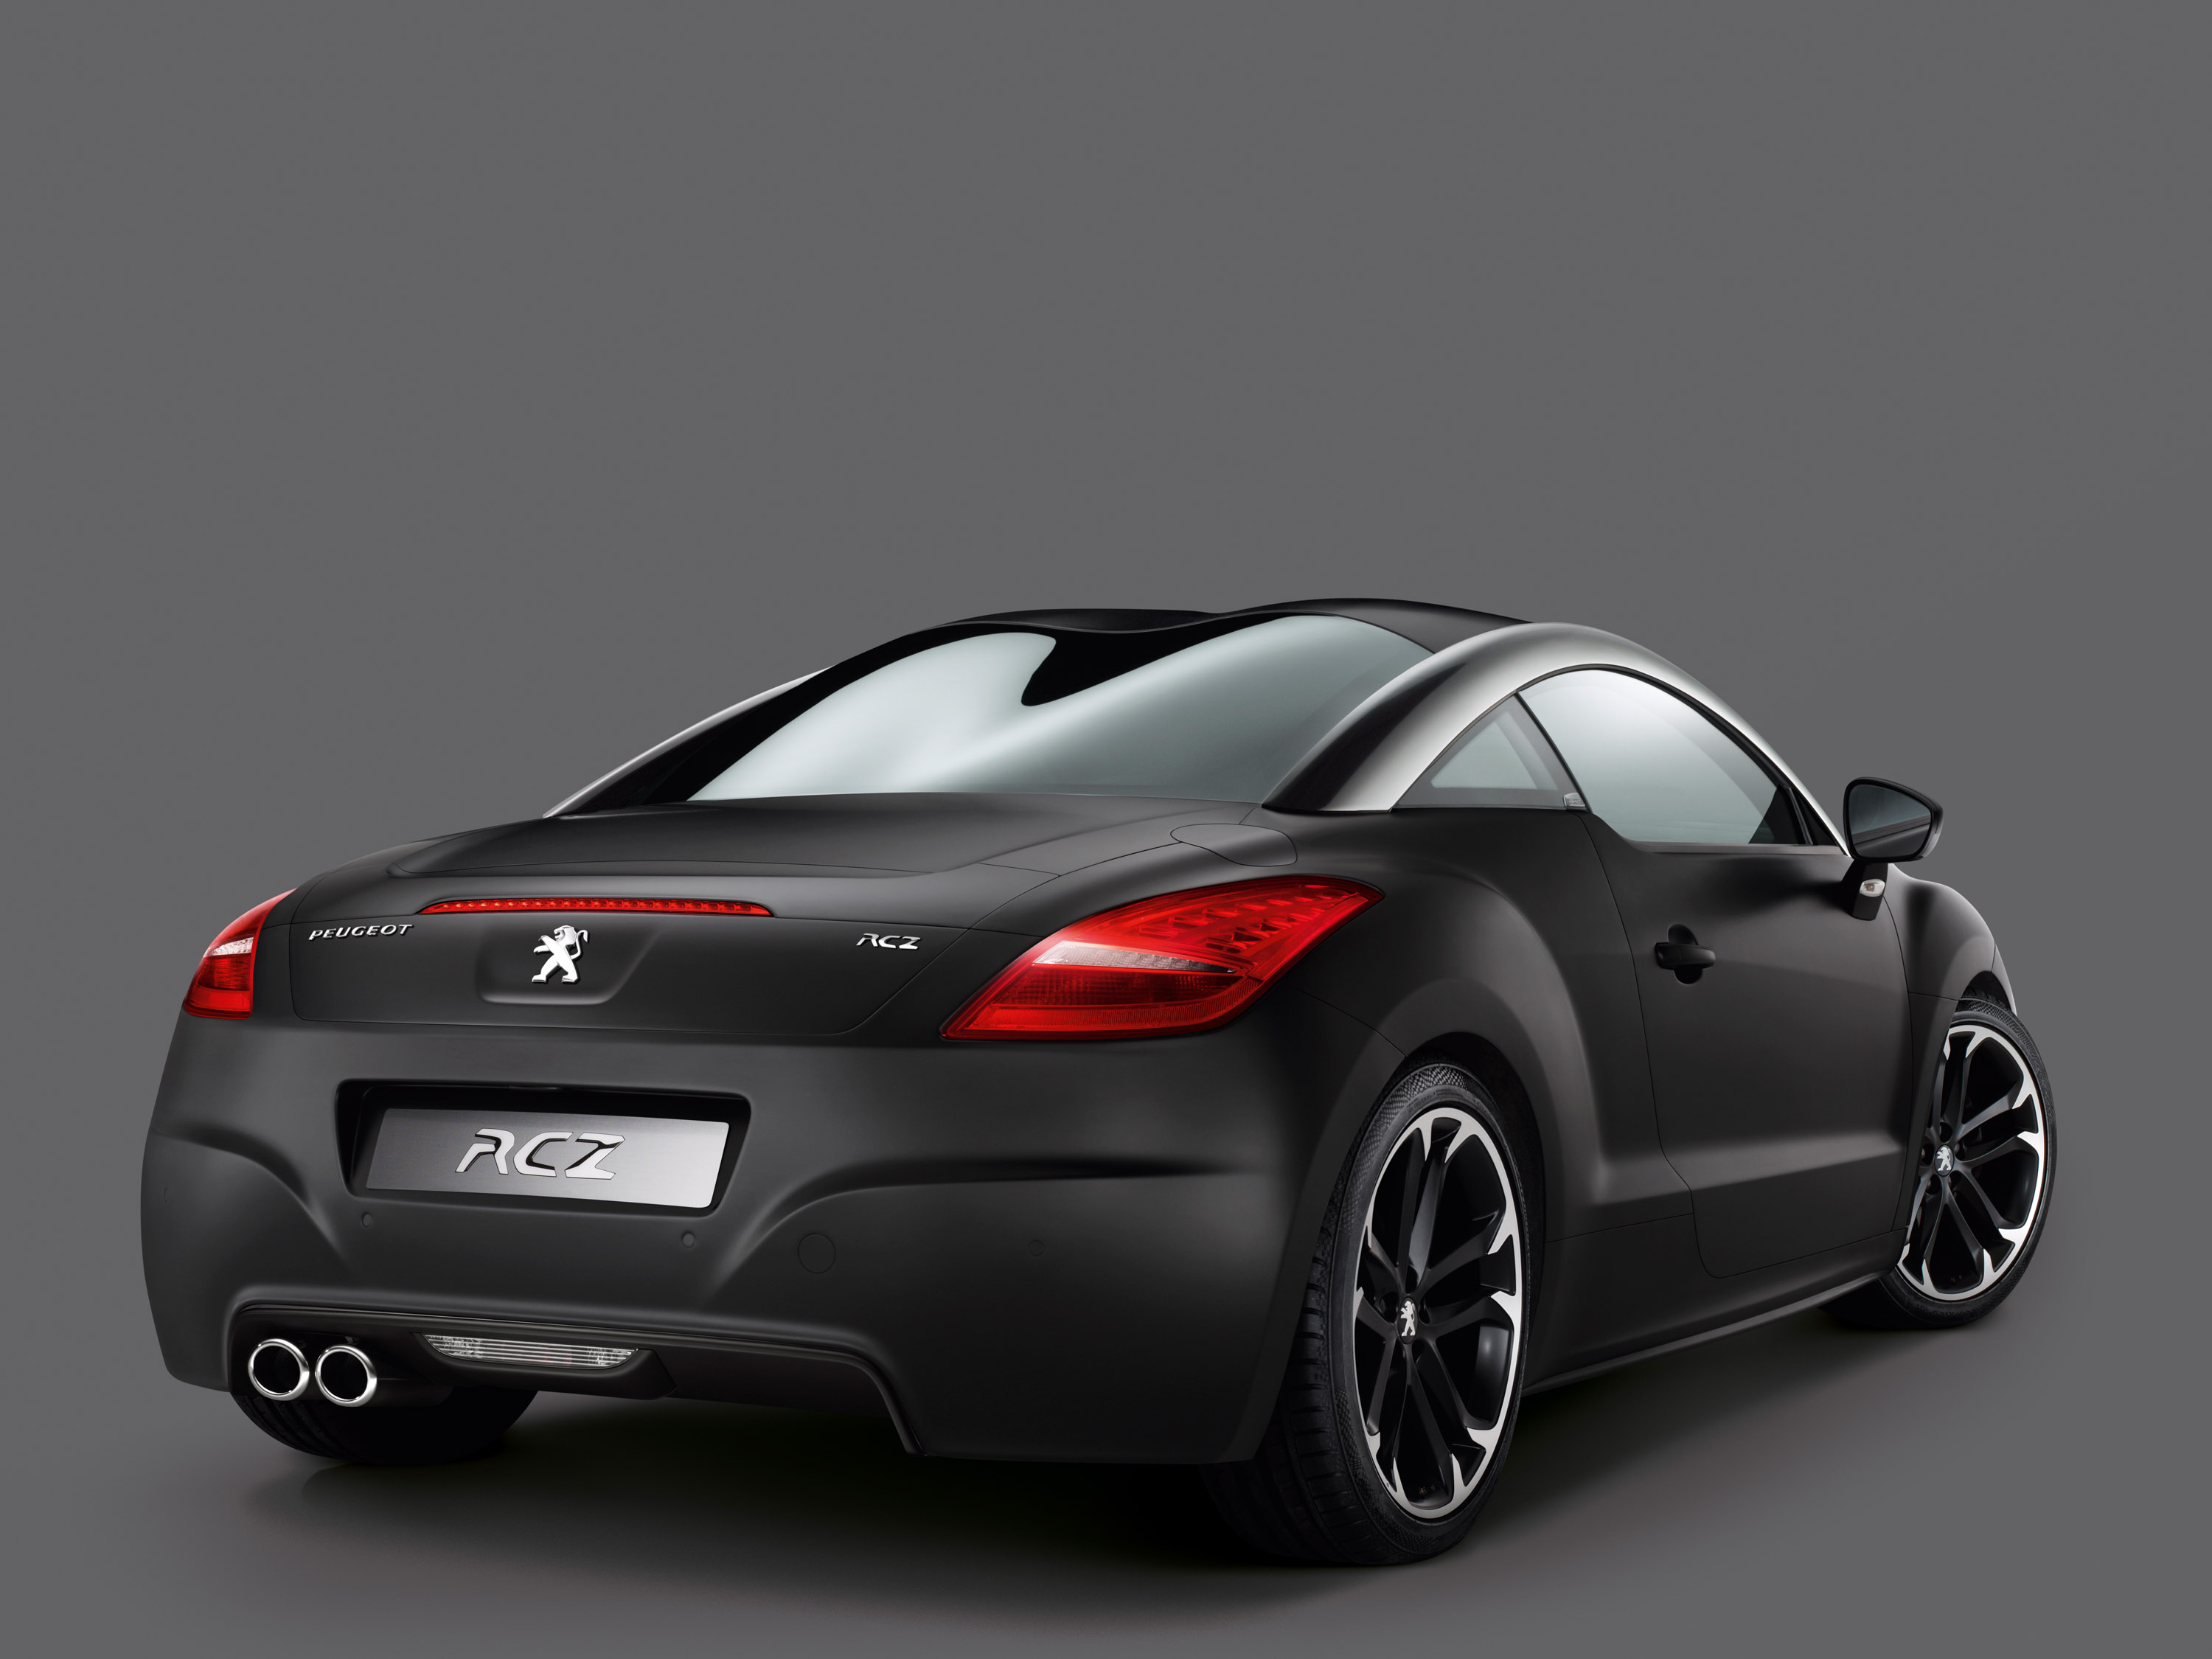 peugeot rcz asphalt hdi. Black Bedroom Furniture Sets. Home Design Ideas